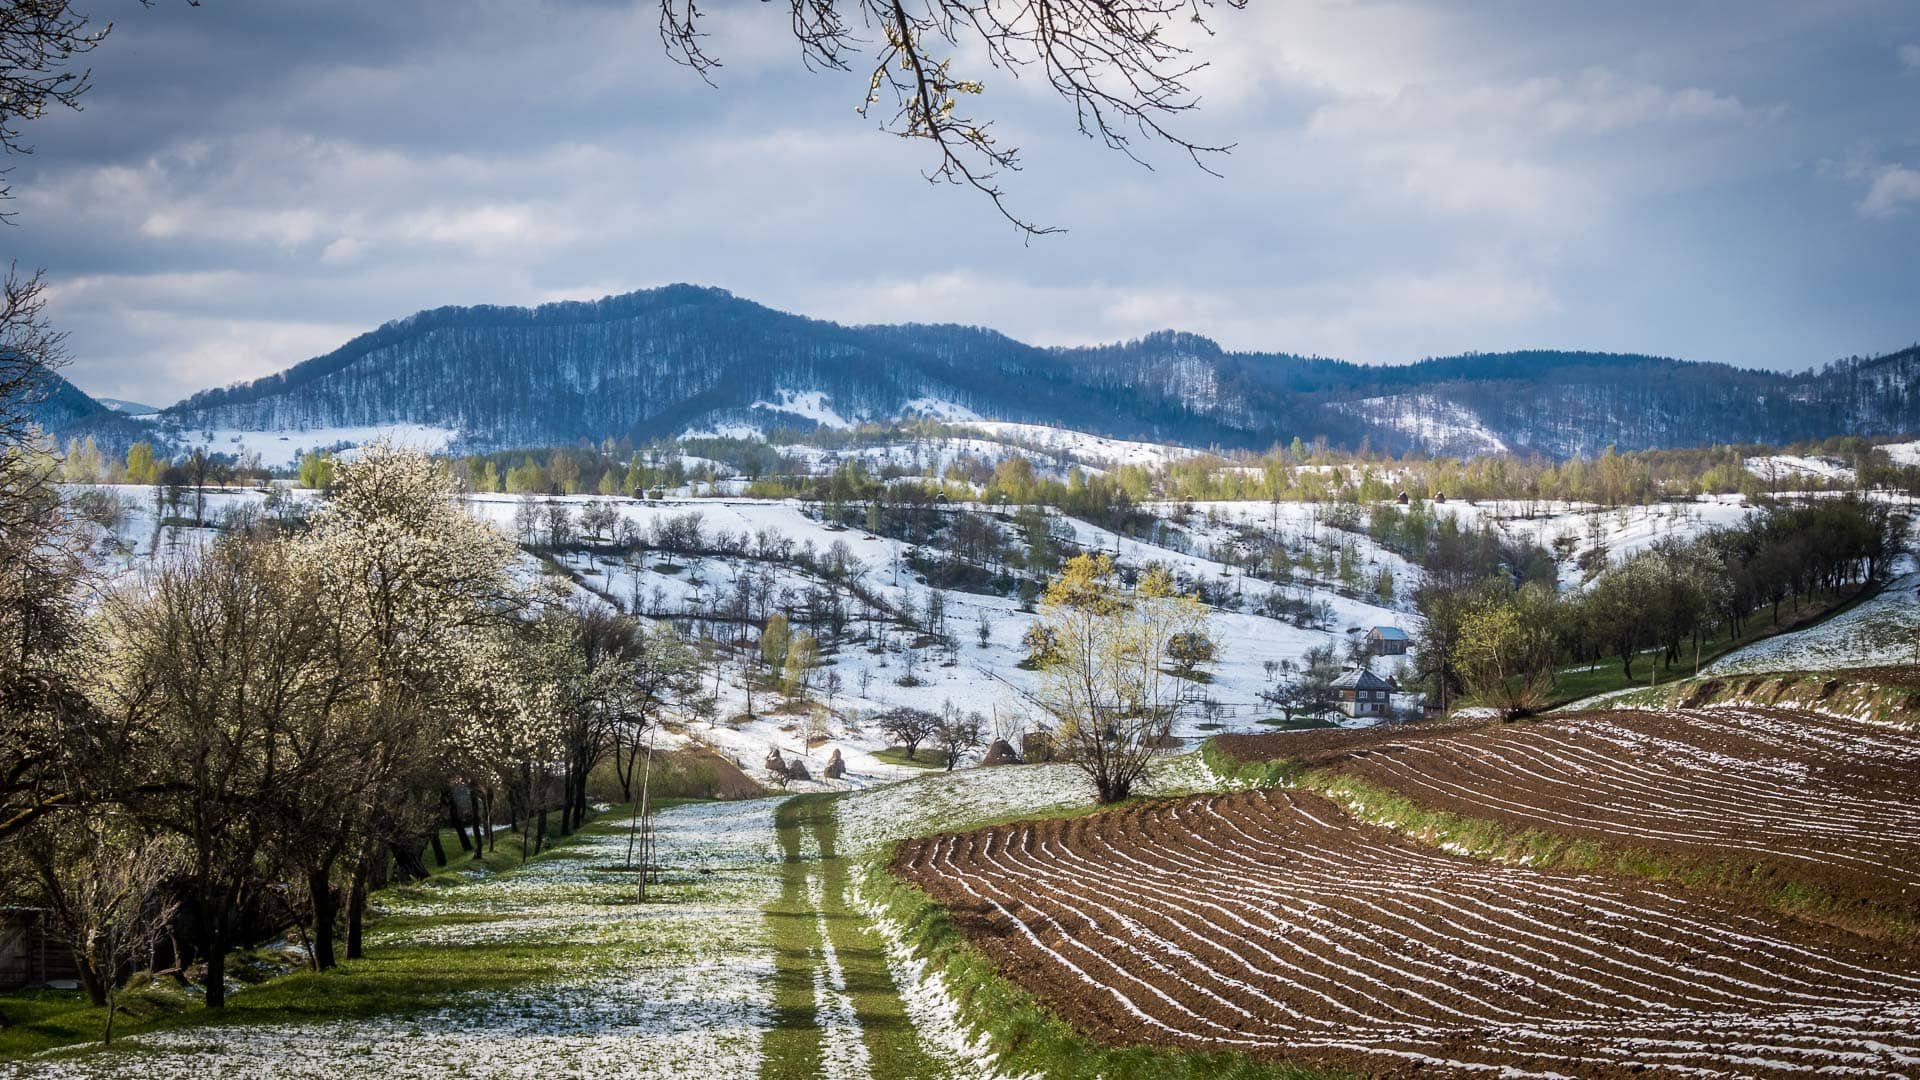 Captivating photos of Romania in spring photo article - landscape, between winter and spring